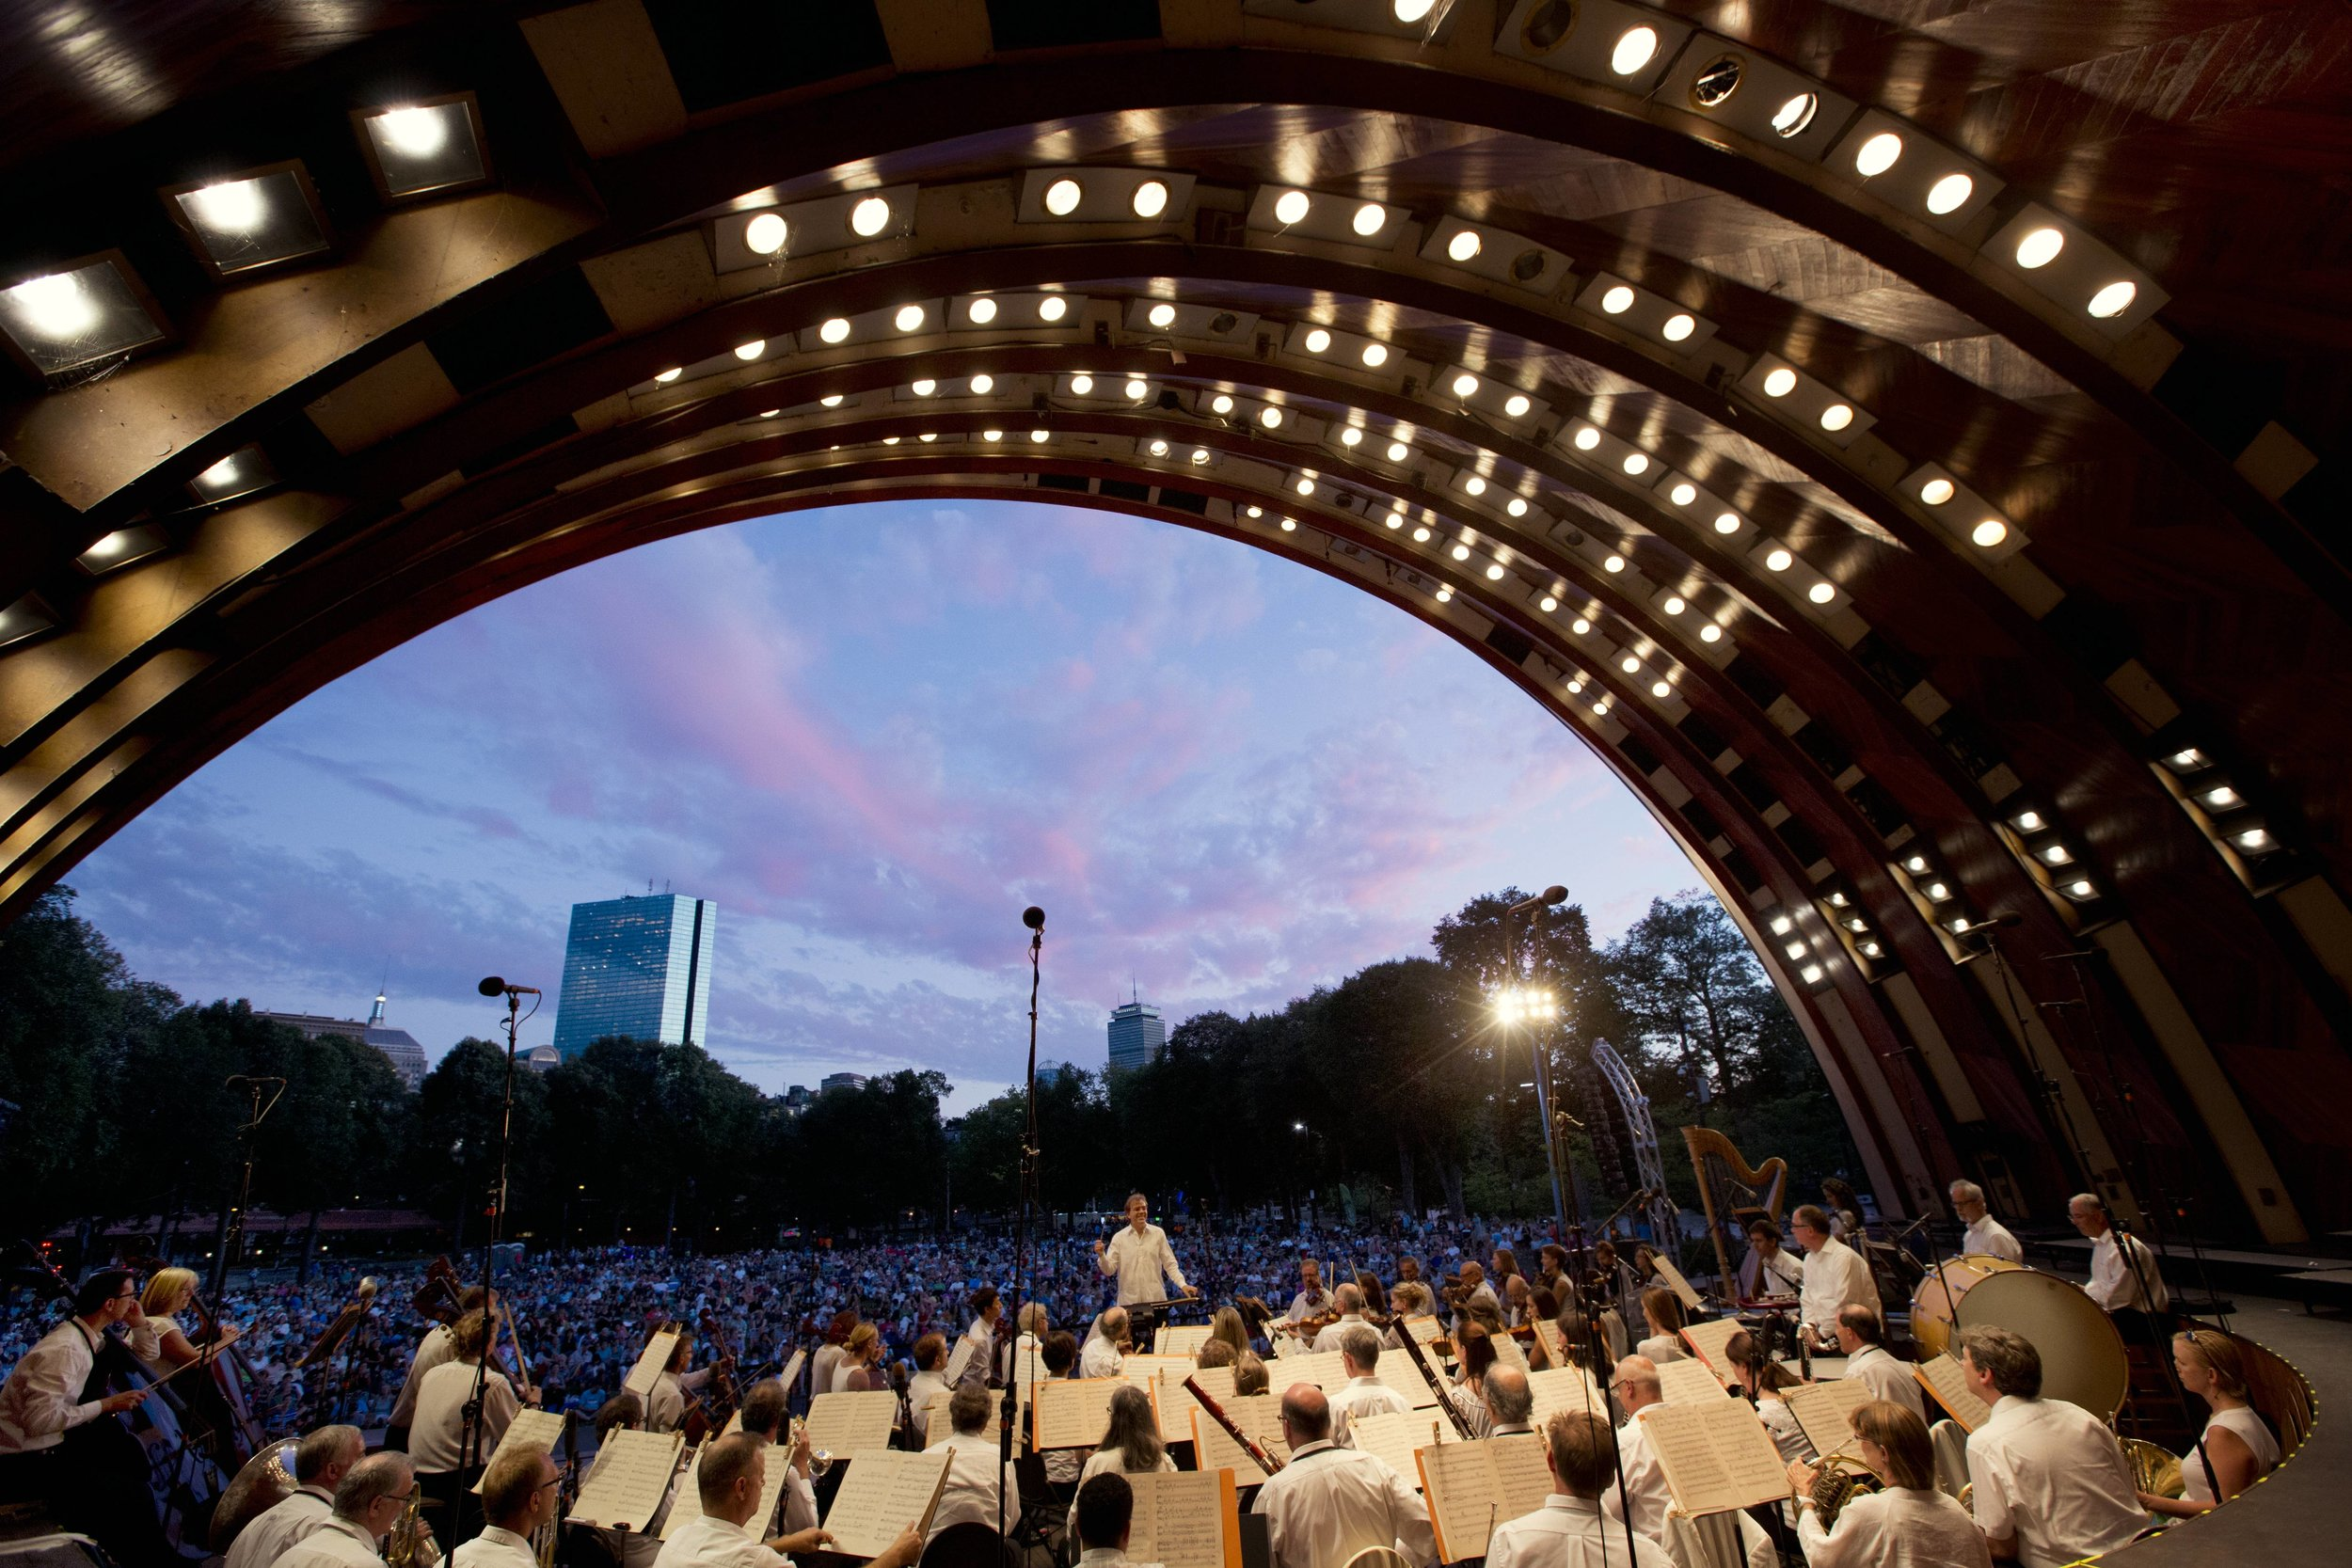 The horn and percussion sections' view from the Hatch Shell, as Christopher Wilkins conducts the Landmarks Orchestra. Michael Dwyer photograph